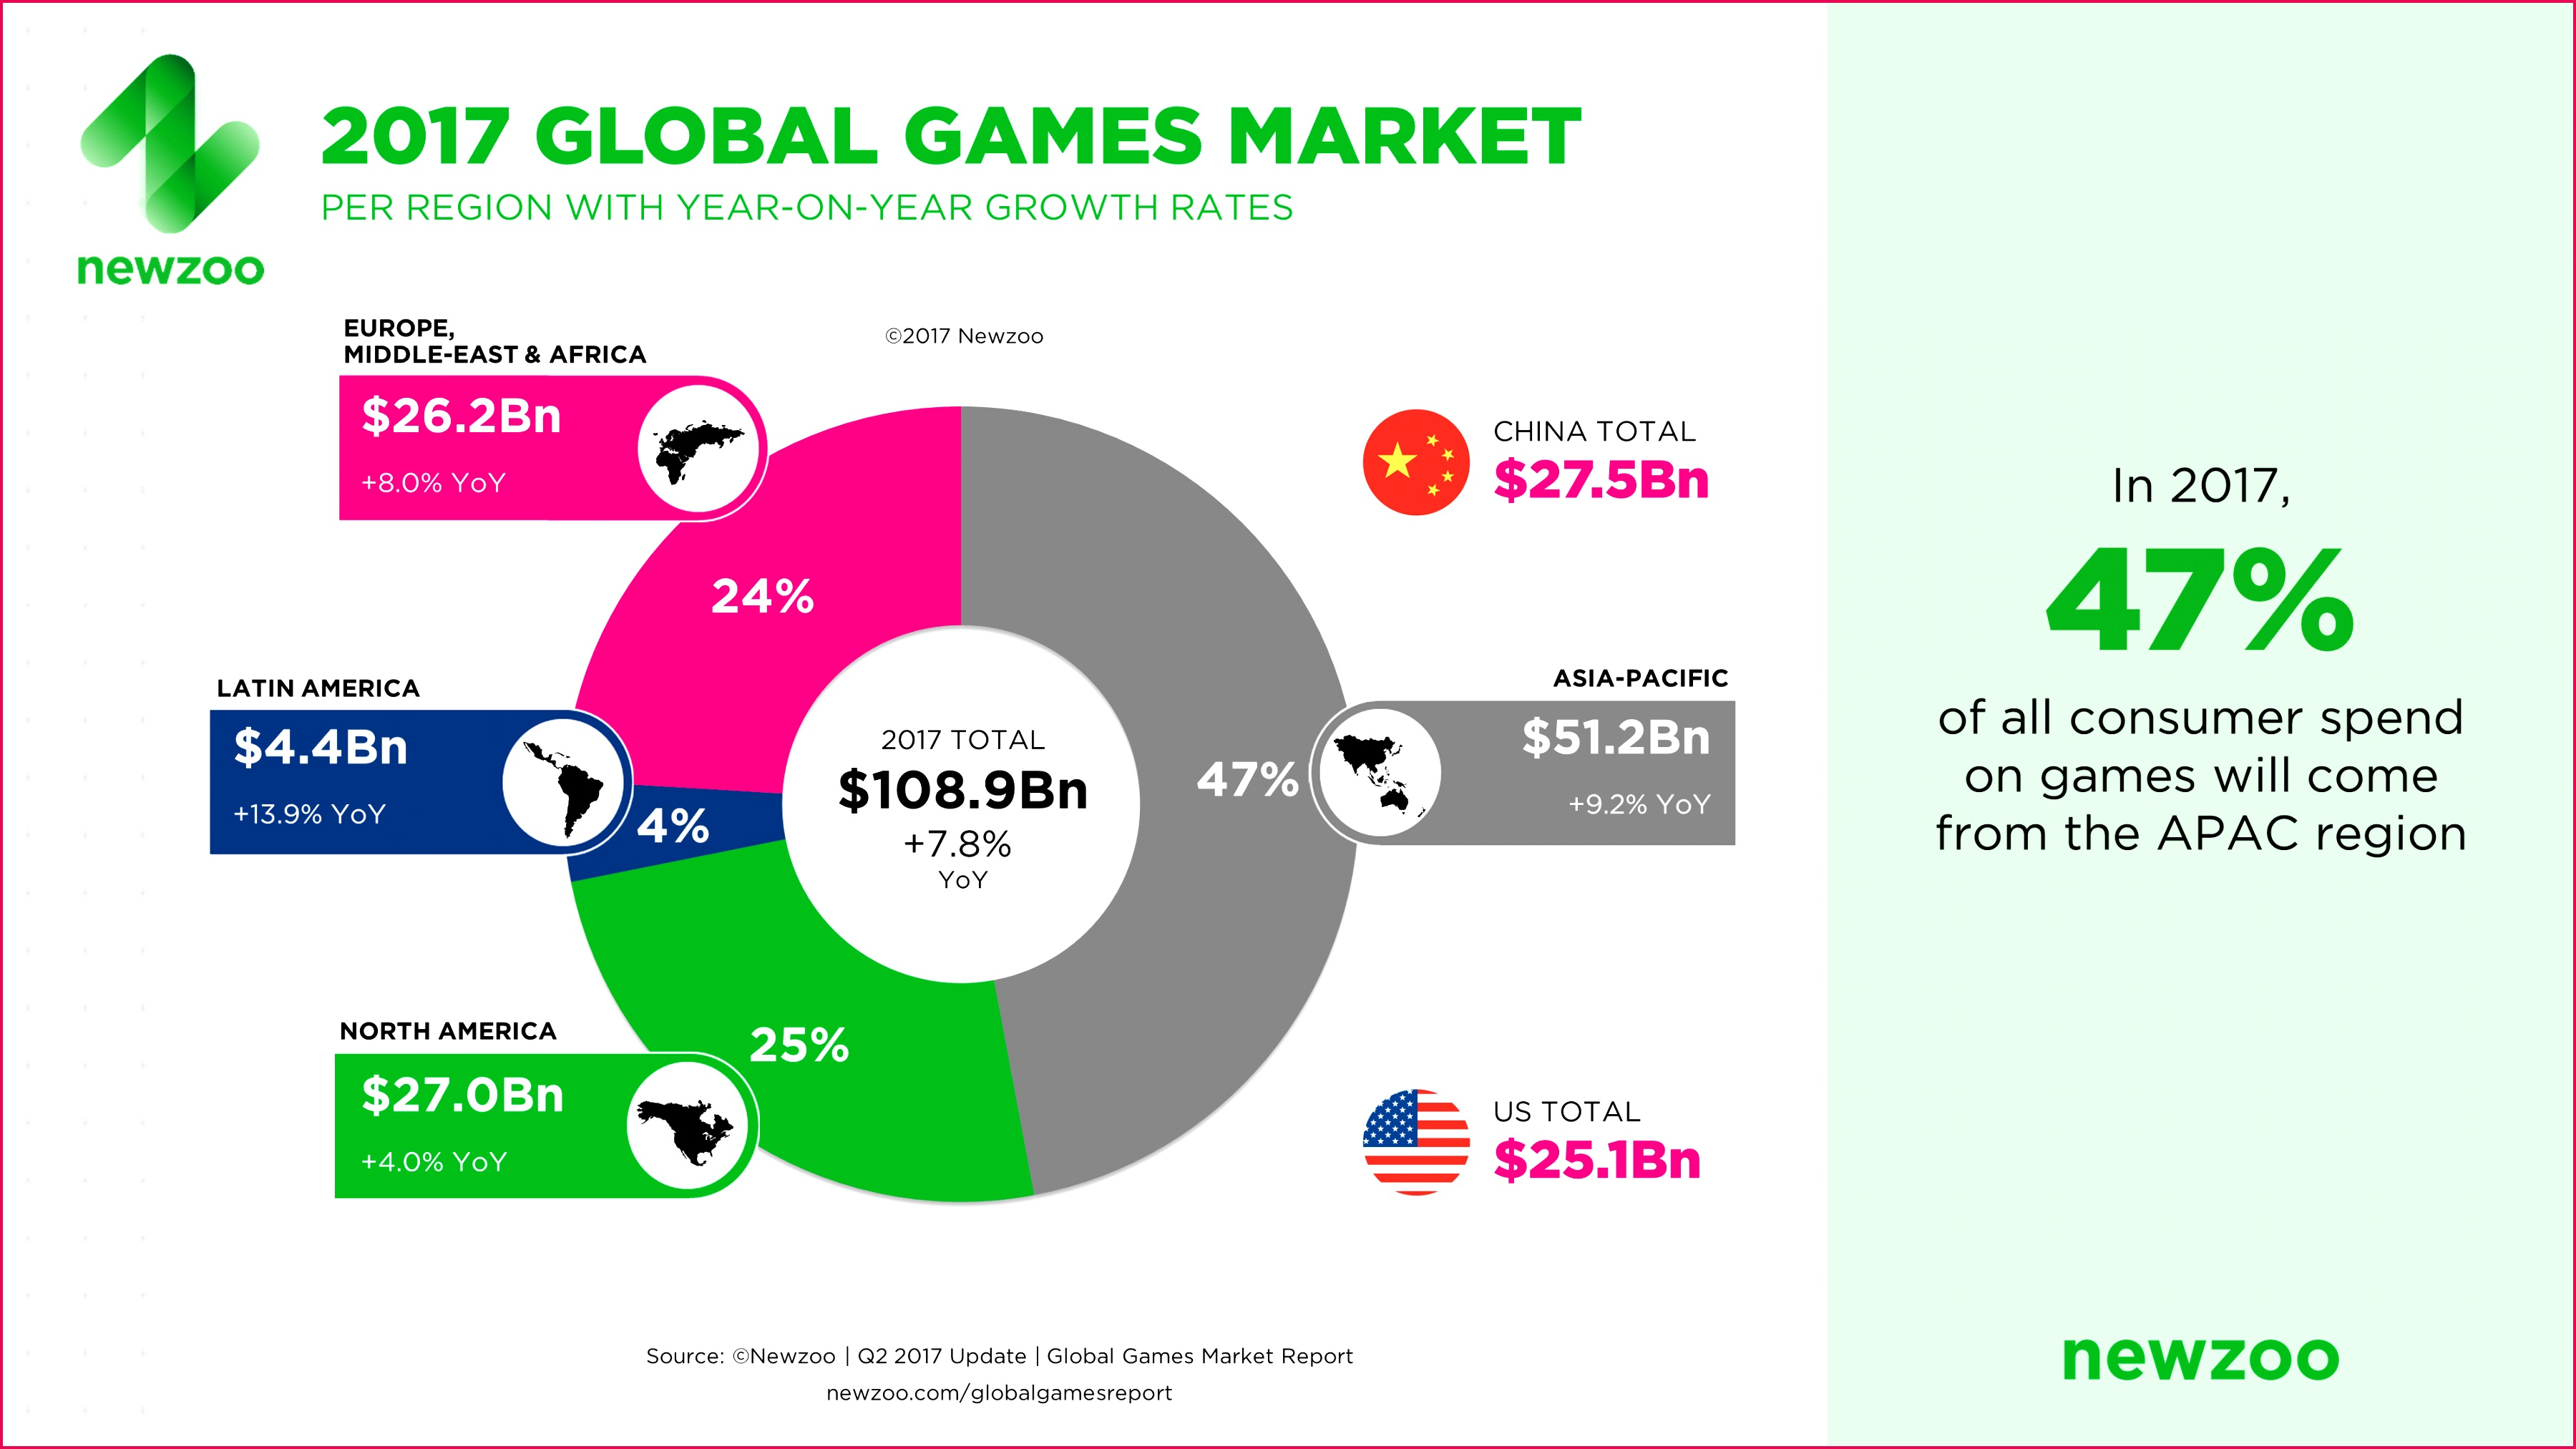 Newzoo 2017 Global Games Market Per Region April 2017